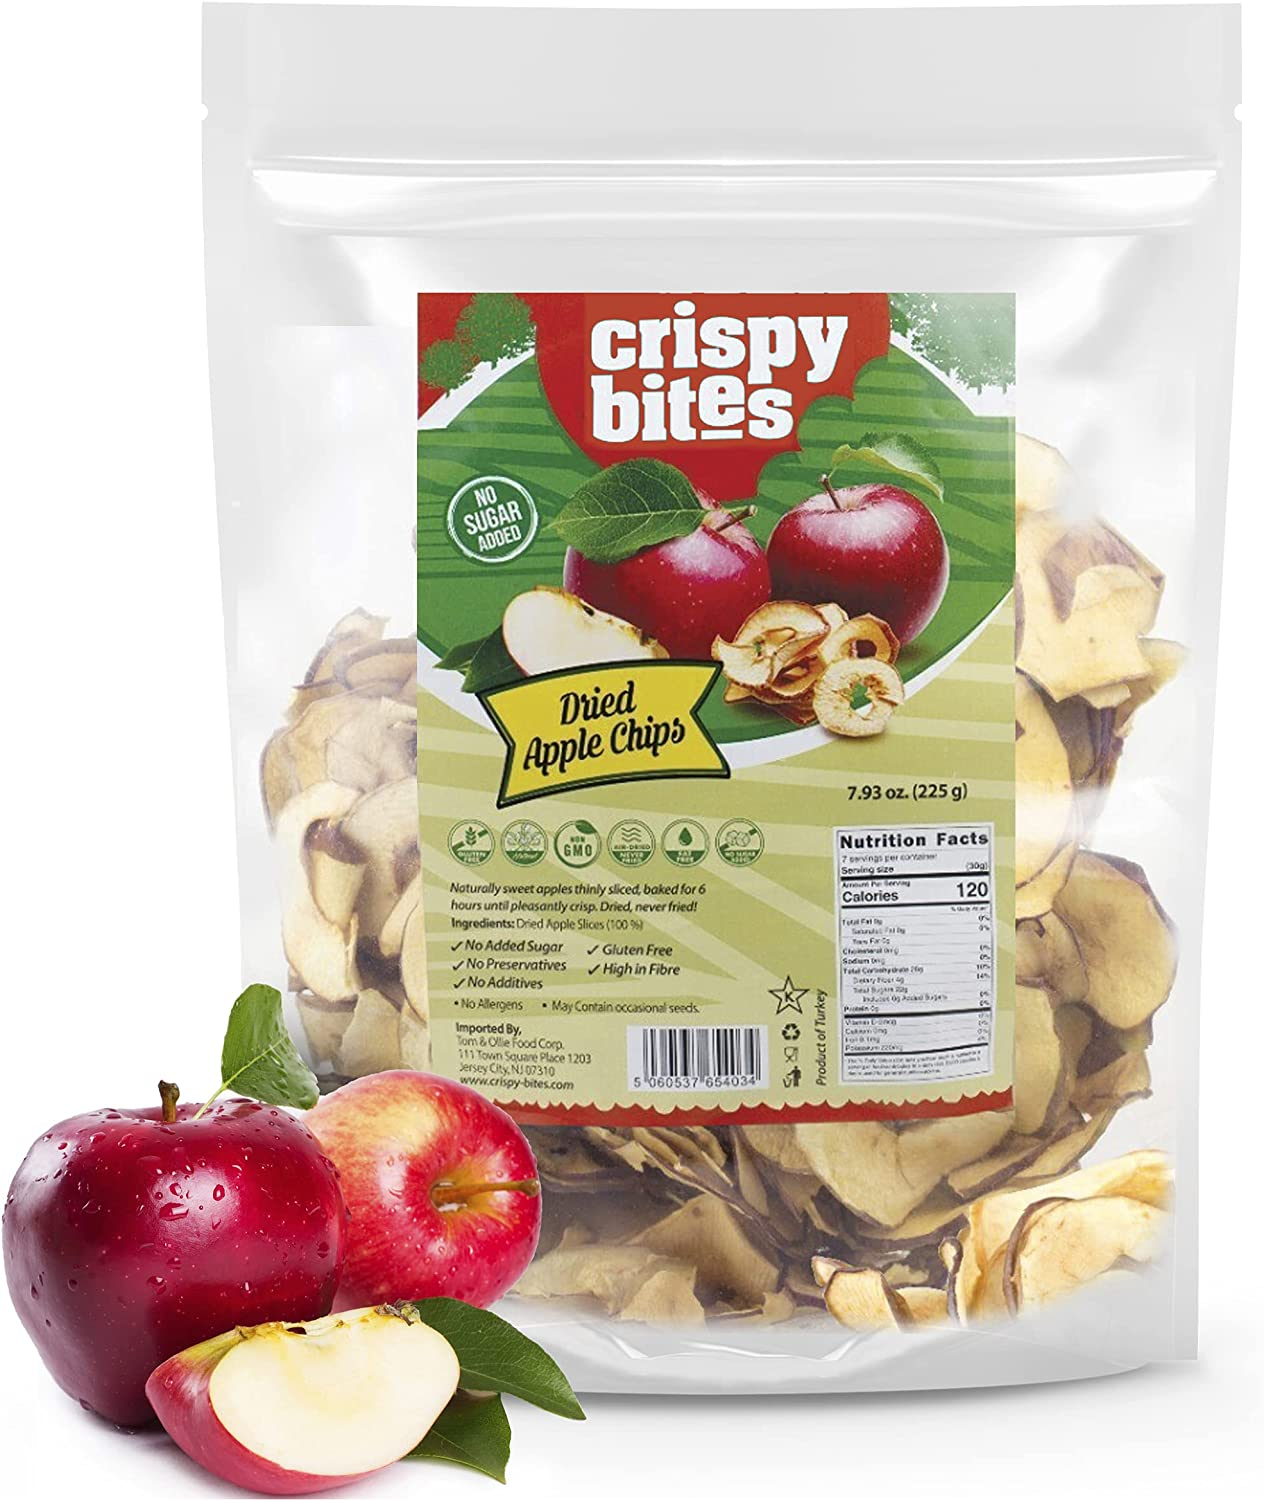 Crispy Bites Original Apples Chips Made from 100% Fresh Red Delicious Red Apples 7.93Oz